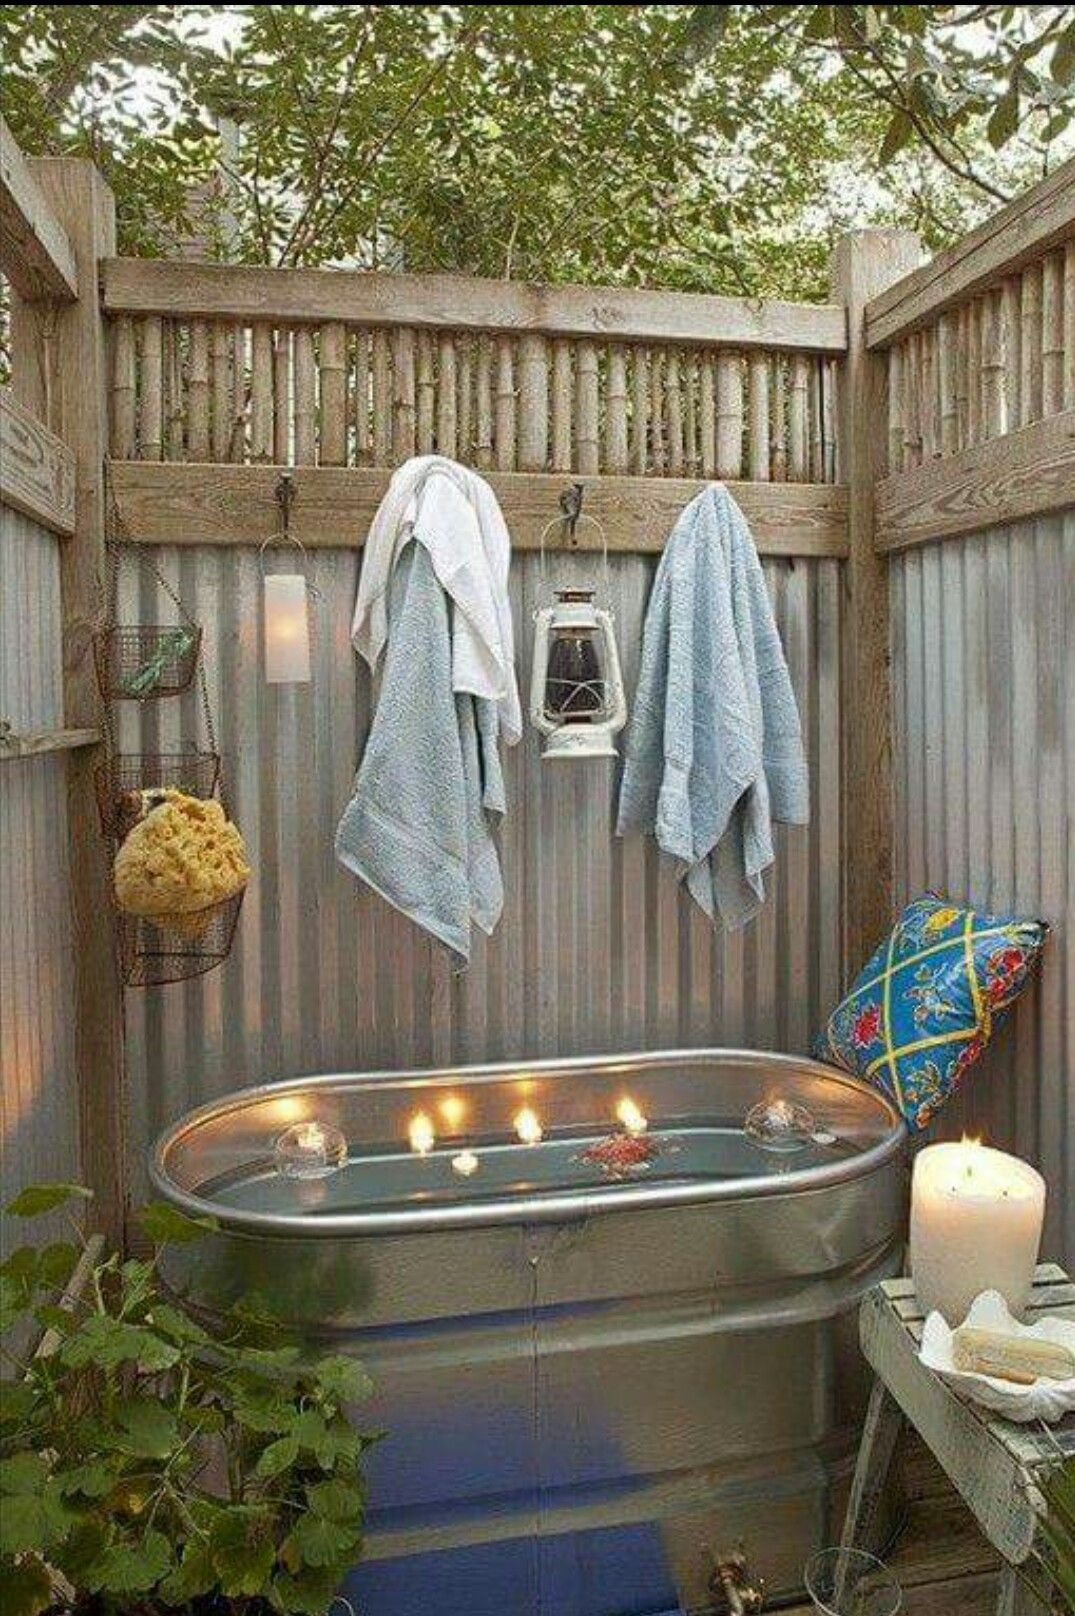 Hottub In De Tuin Badderen In De Tuin My Future Home In 2019 Outdoor Bathtub